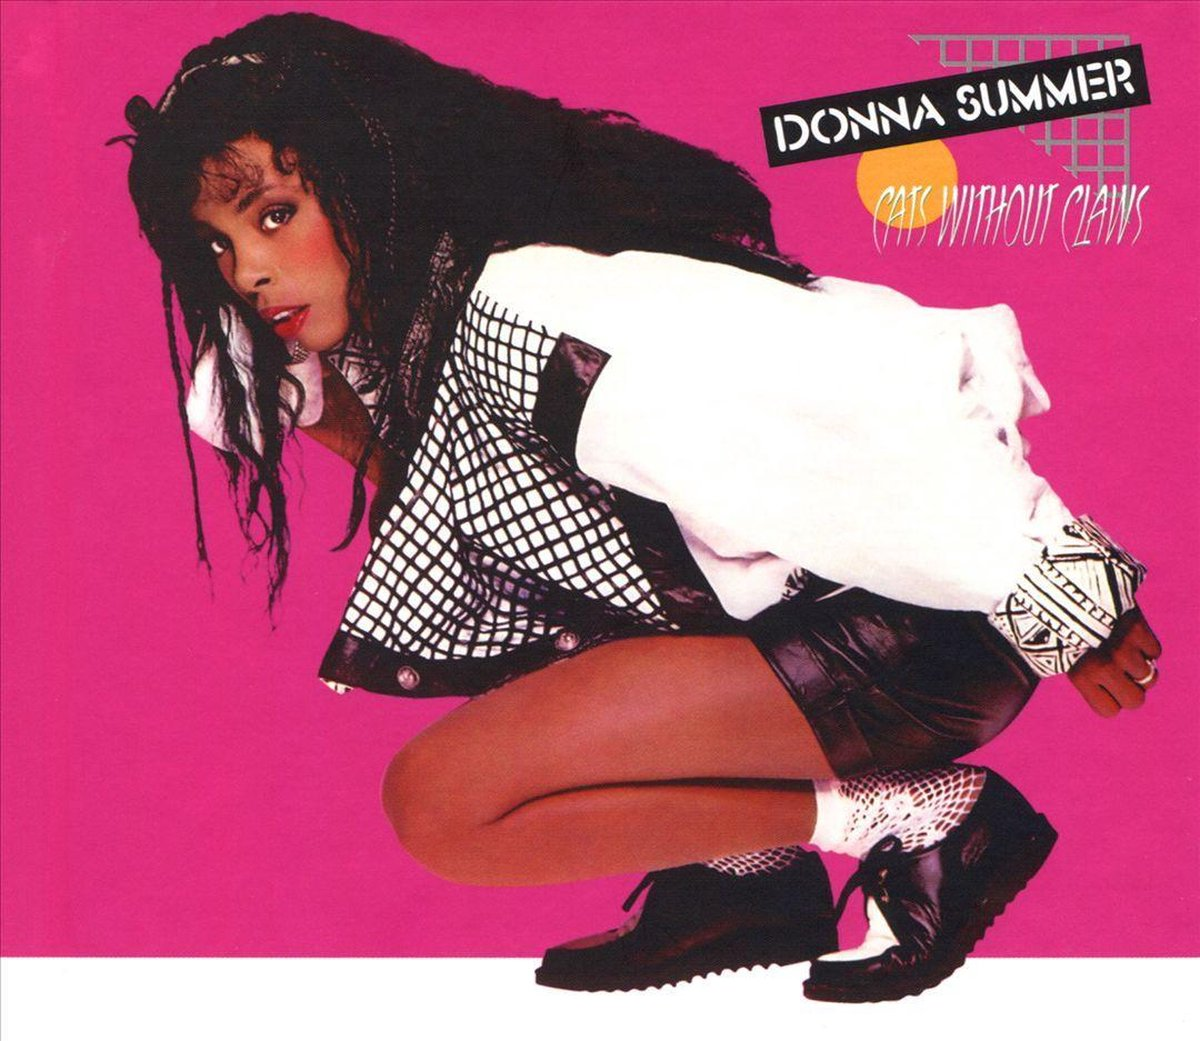 Cats Without Claws Deluxe Edition (Remastered) - Donna Summer